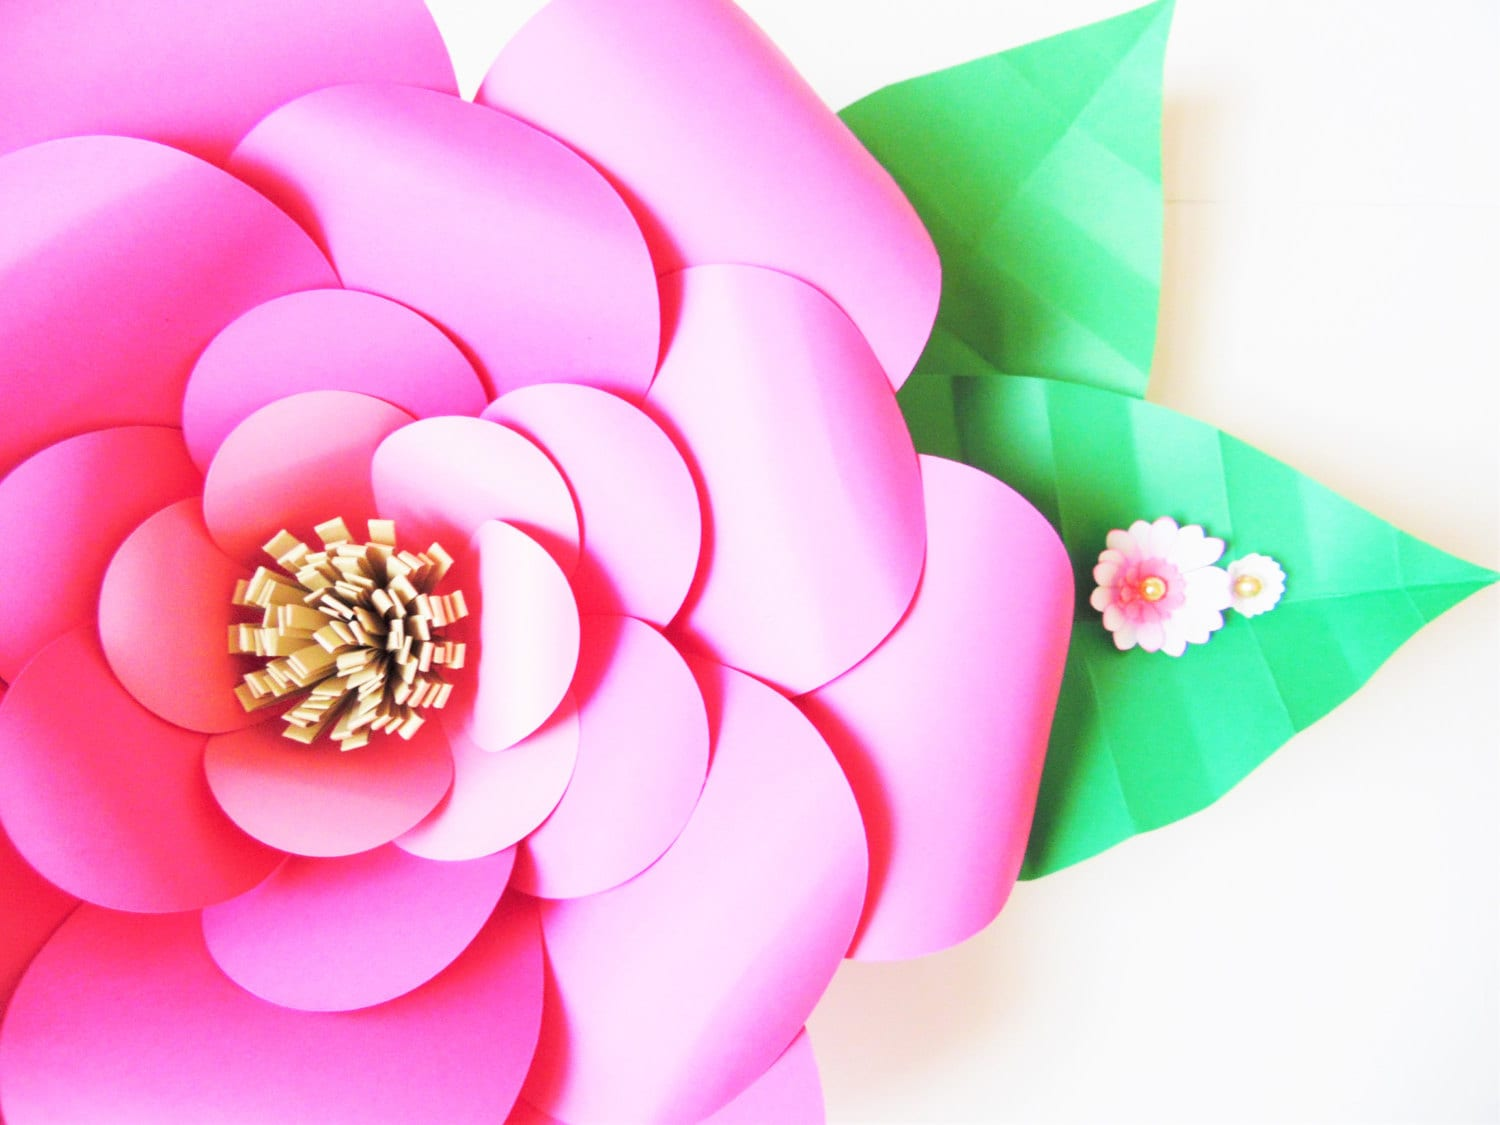 Diy paper flower templates easy diy giant paper flowers zoom mightylinksfo